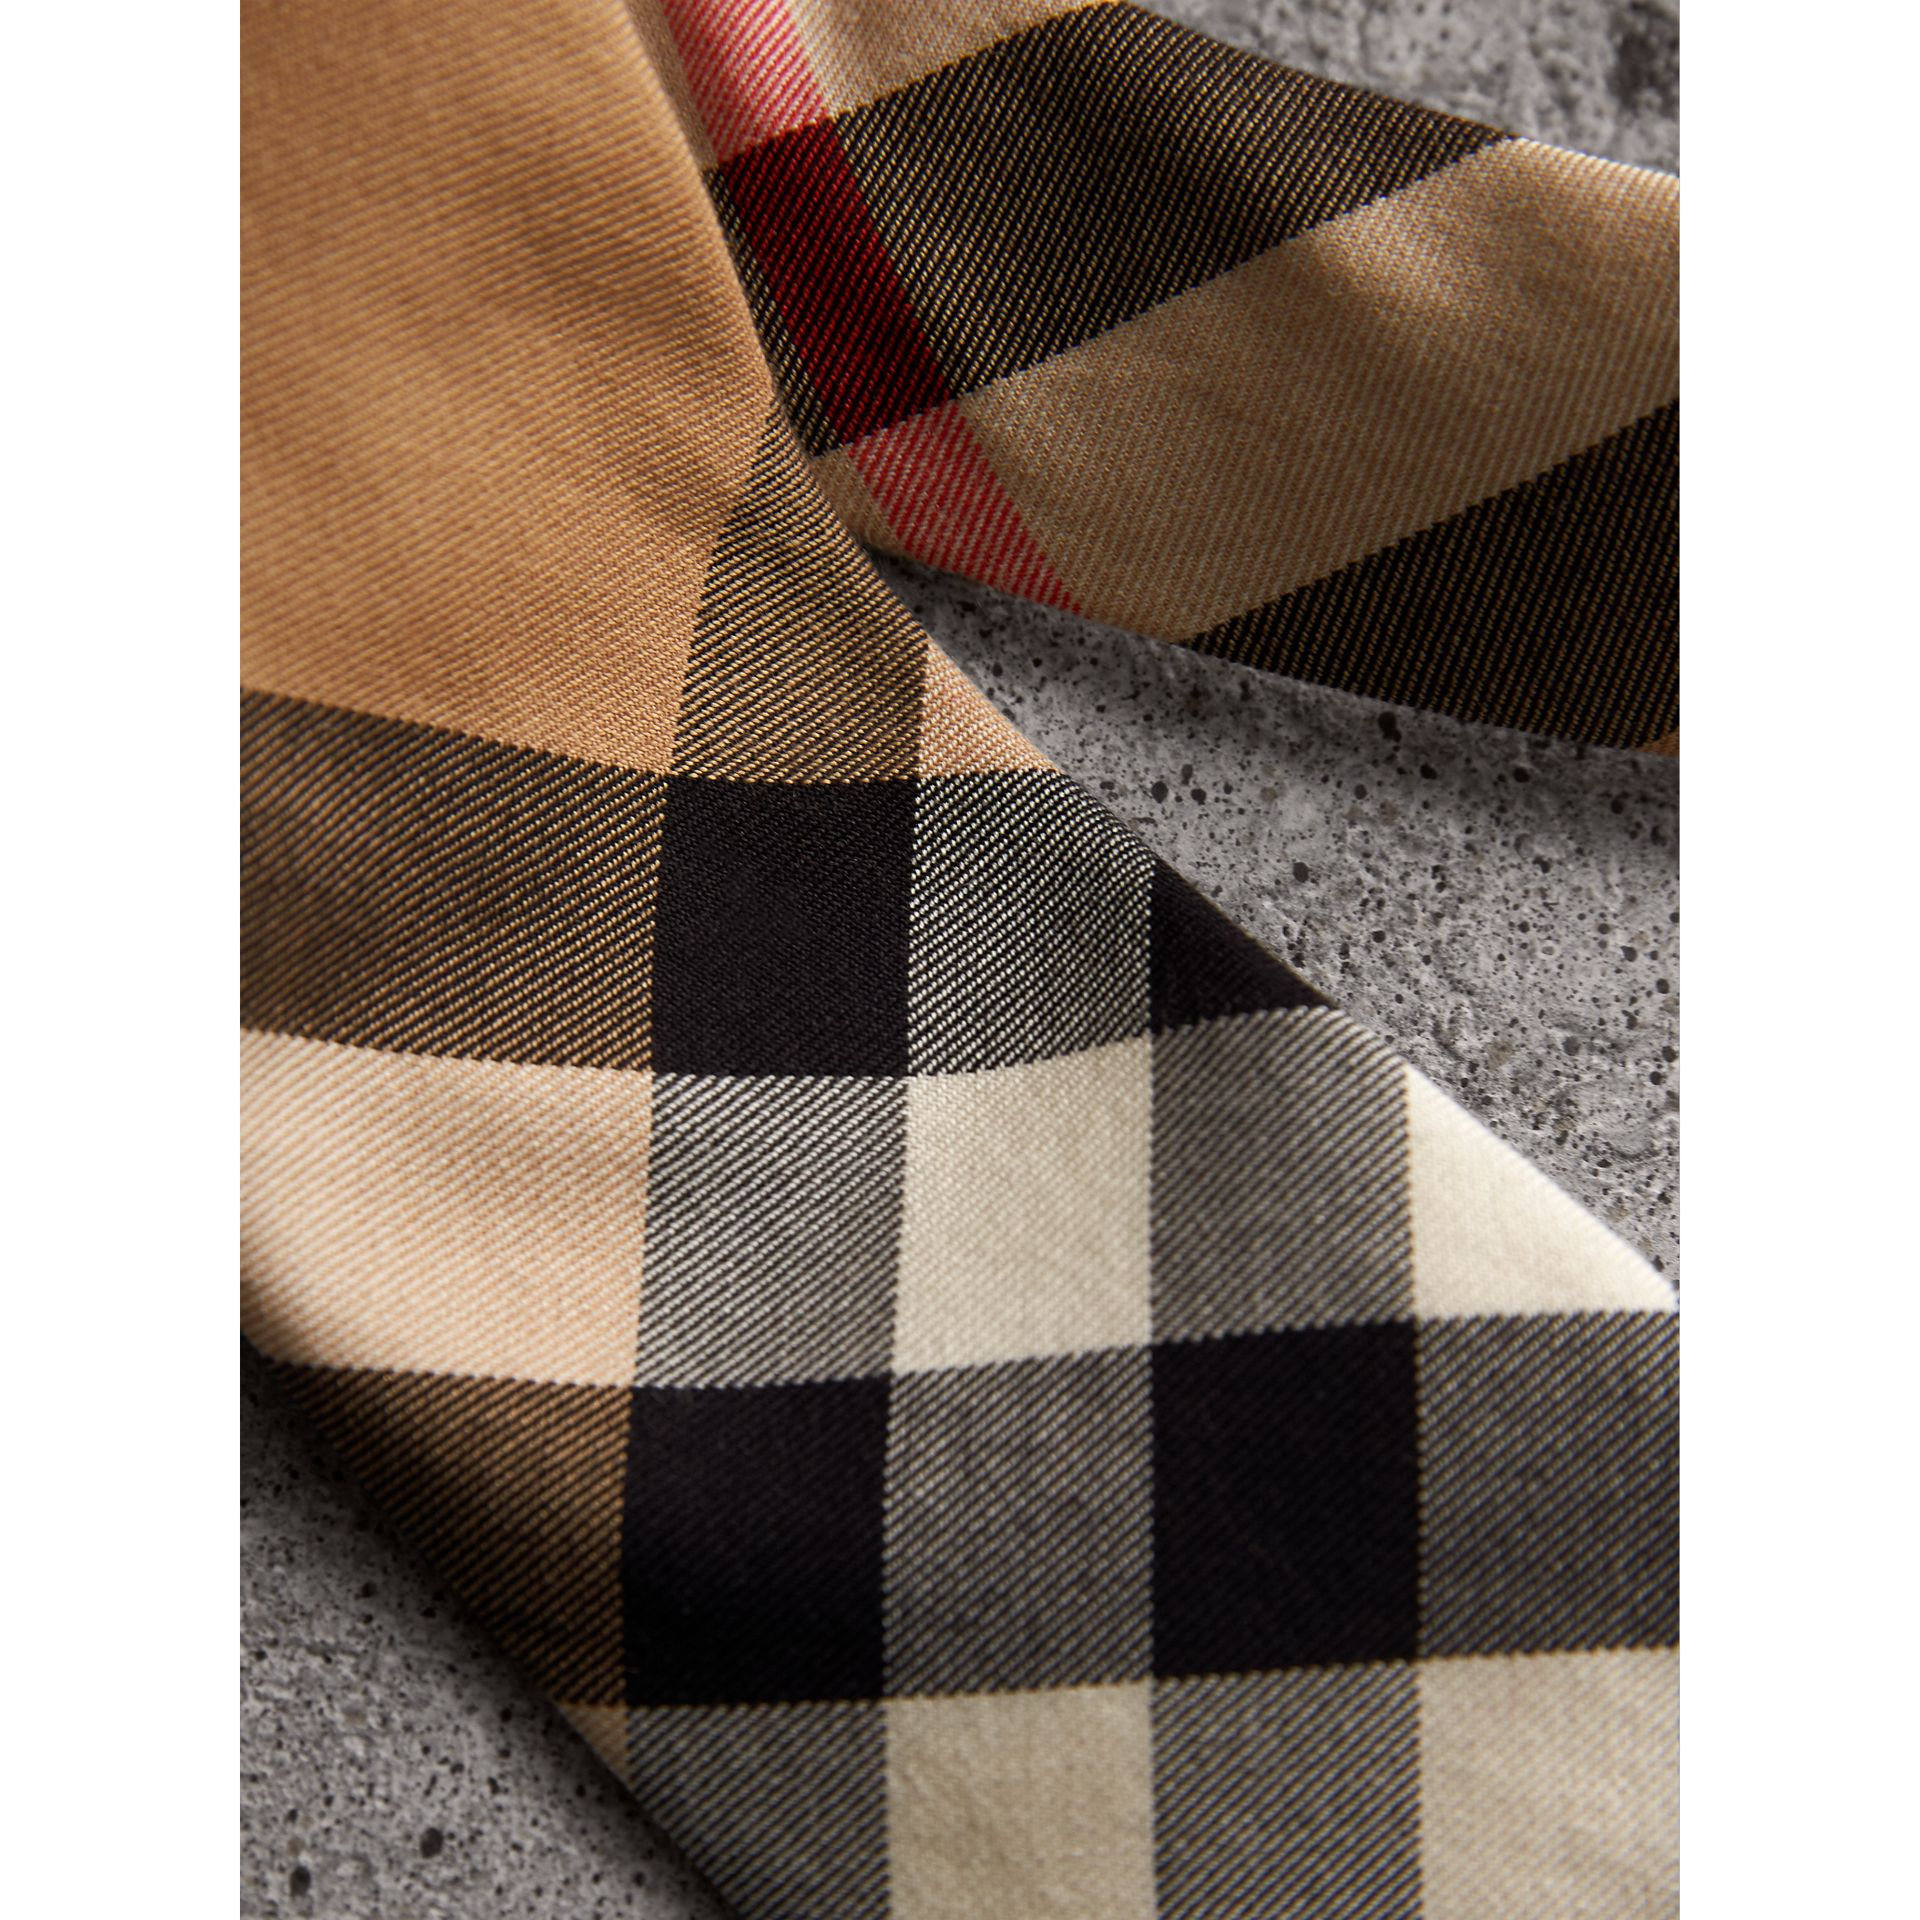 Modern Cut Check Cotton Cashmere Tie in Camel - Men | Burberry United Kingdom - gallery image 1